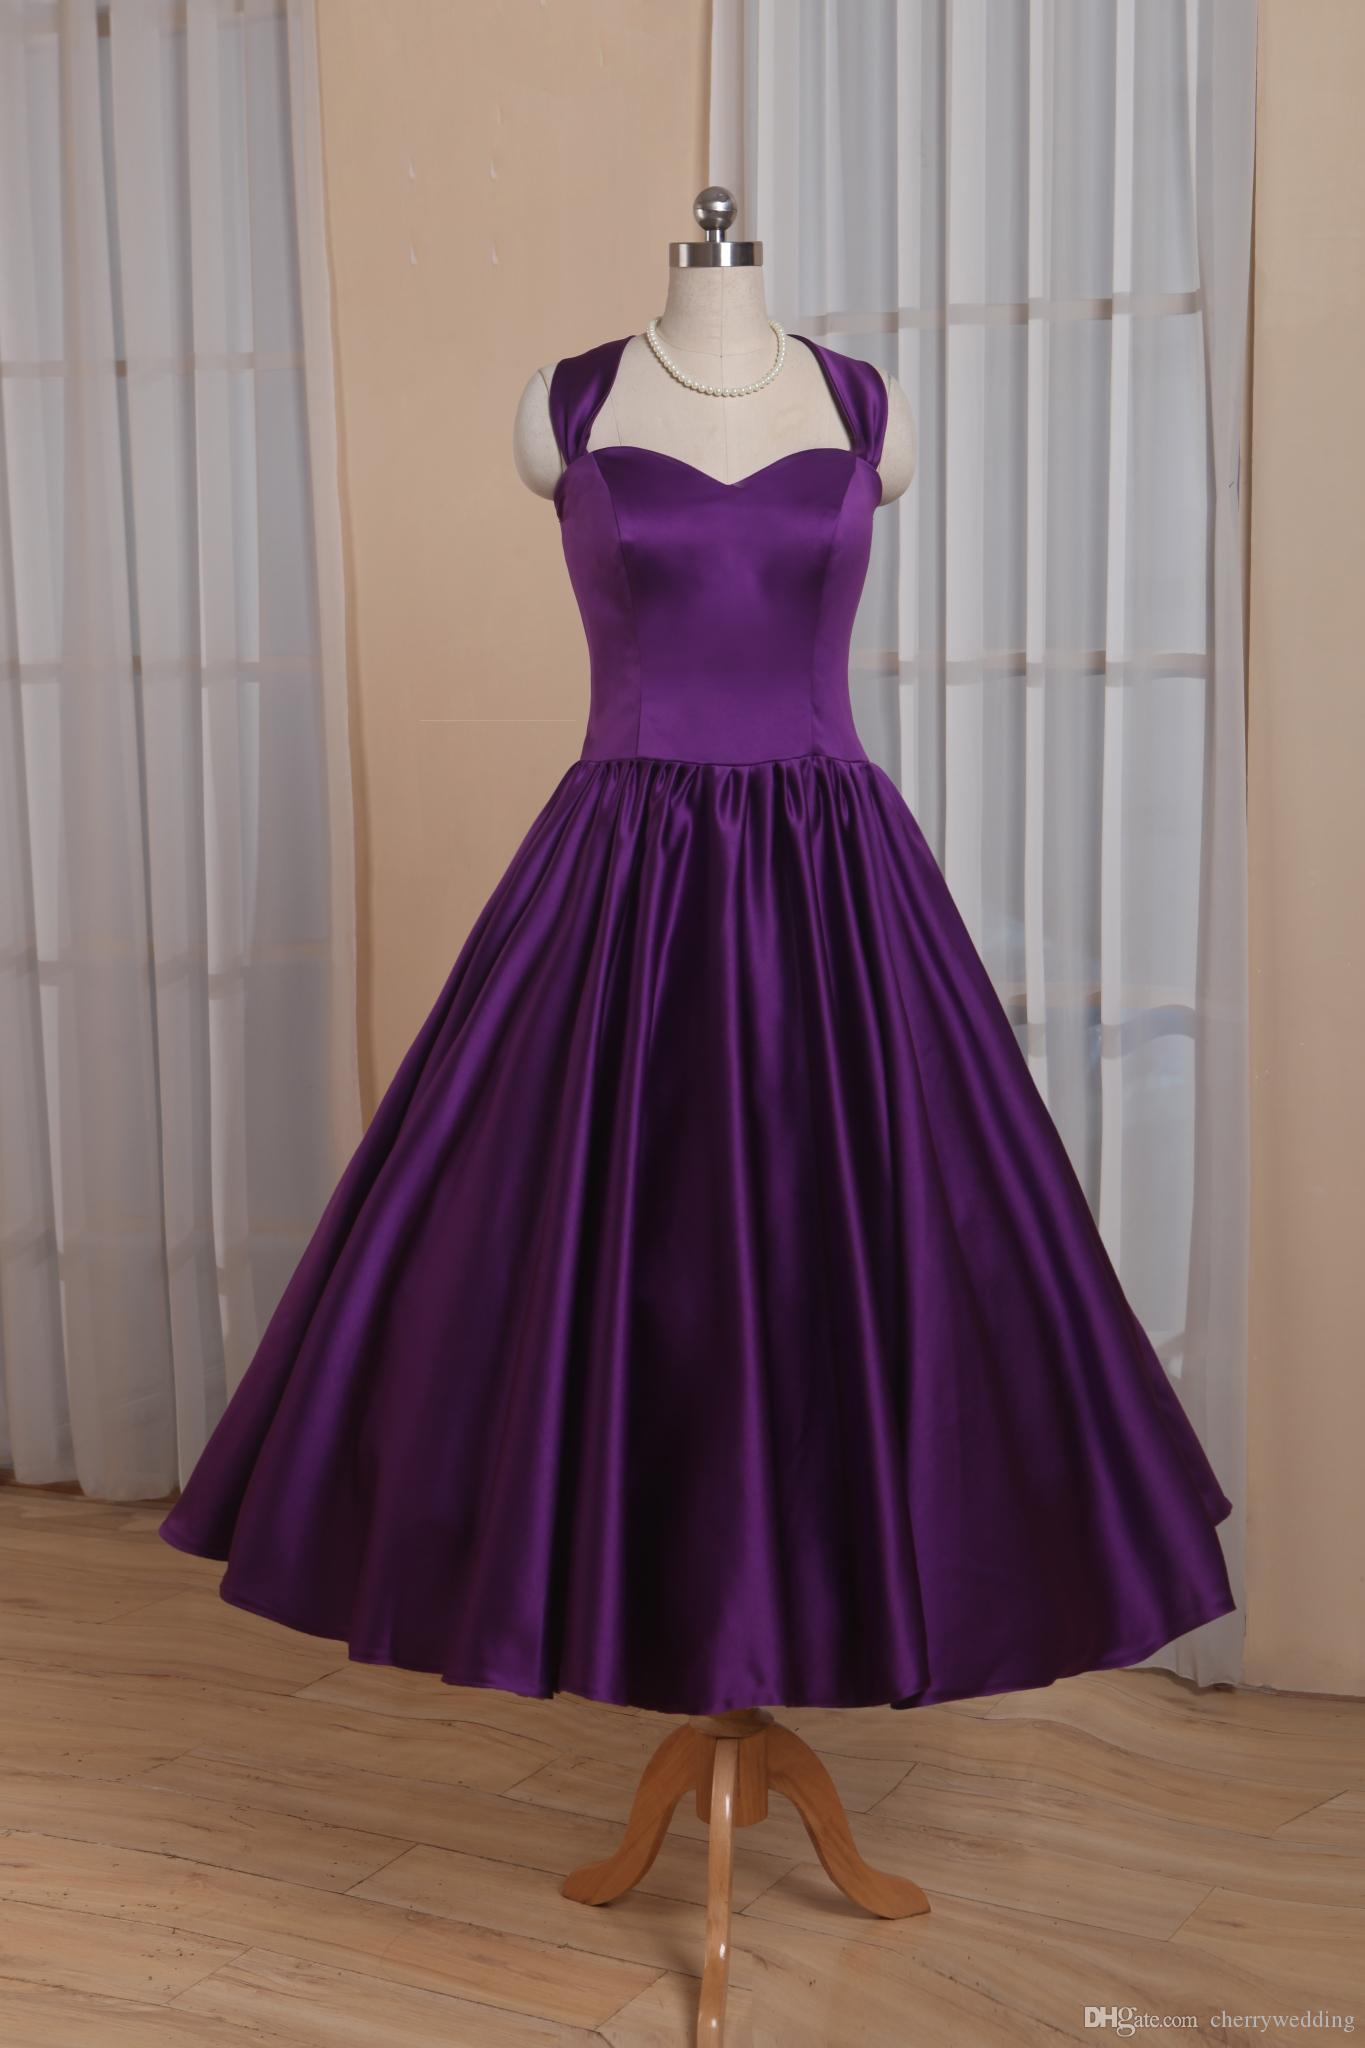 b800ef5da1d Discount Corset Wedding Dresses 50s Inspired Wedding Dresses Vintage Bridesmaid  Dresses Tea Length Purple Bridal Gowns RLL064 Long Sleeve Wedding Gowns ...